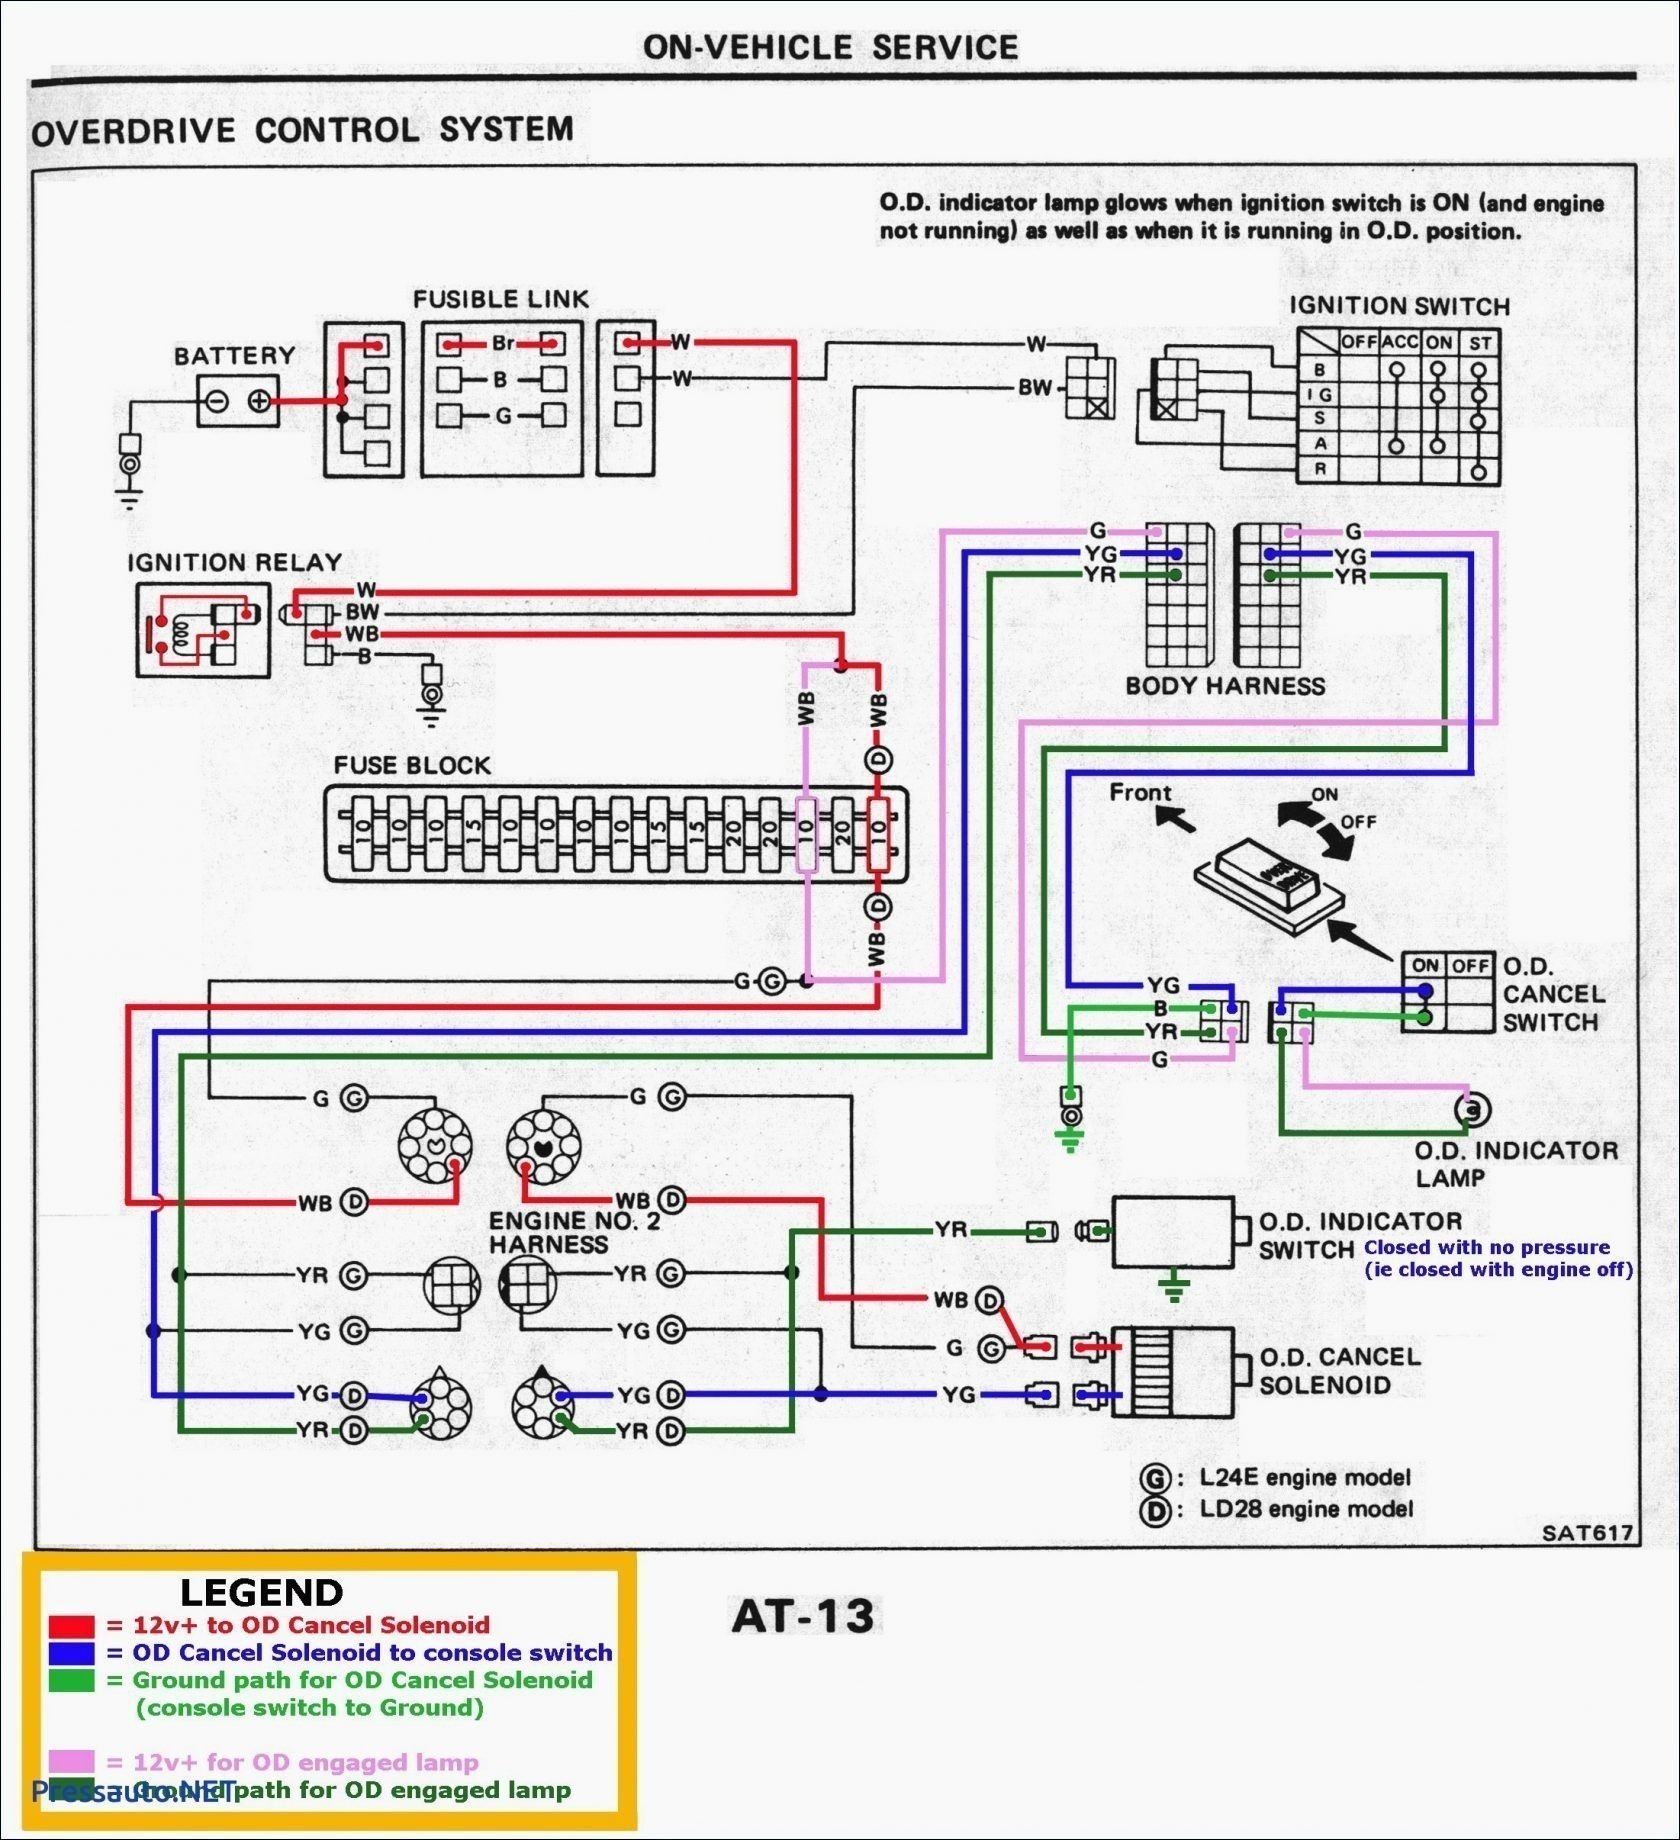 Motorcycle Wiring Diagrams 1980 Honda C70 Passport Wiring Diagram Fresh Honda C70 Occasion Of Motorcycle Wiring Diagrams